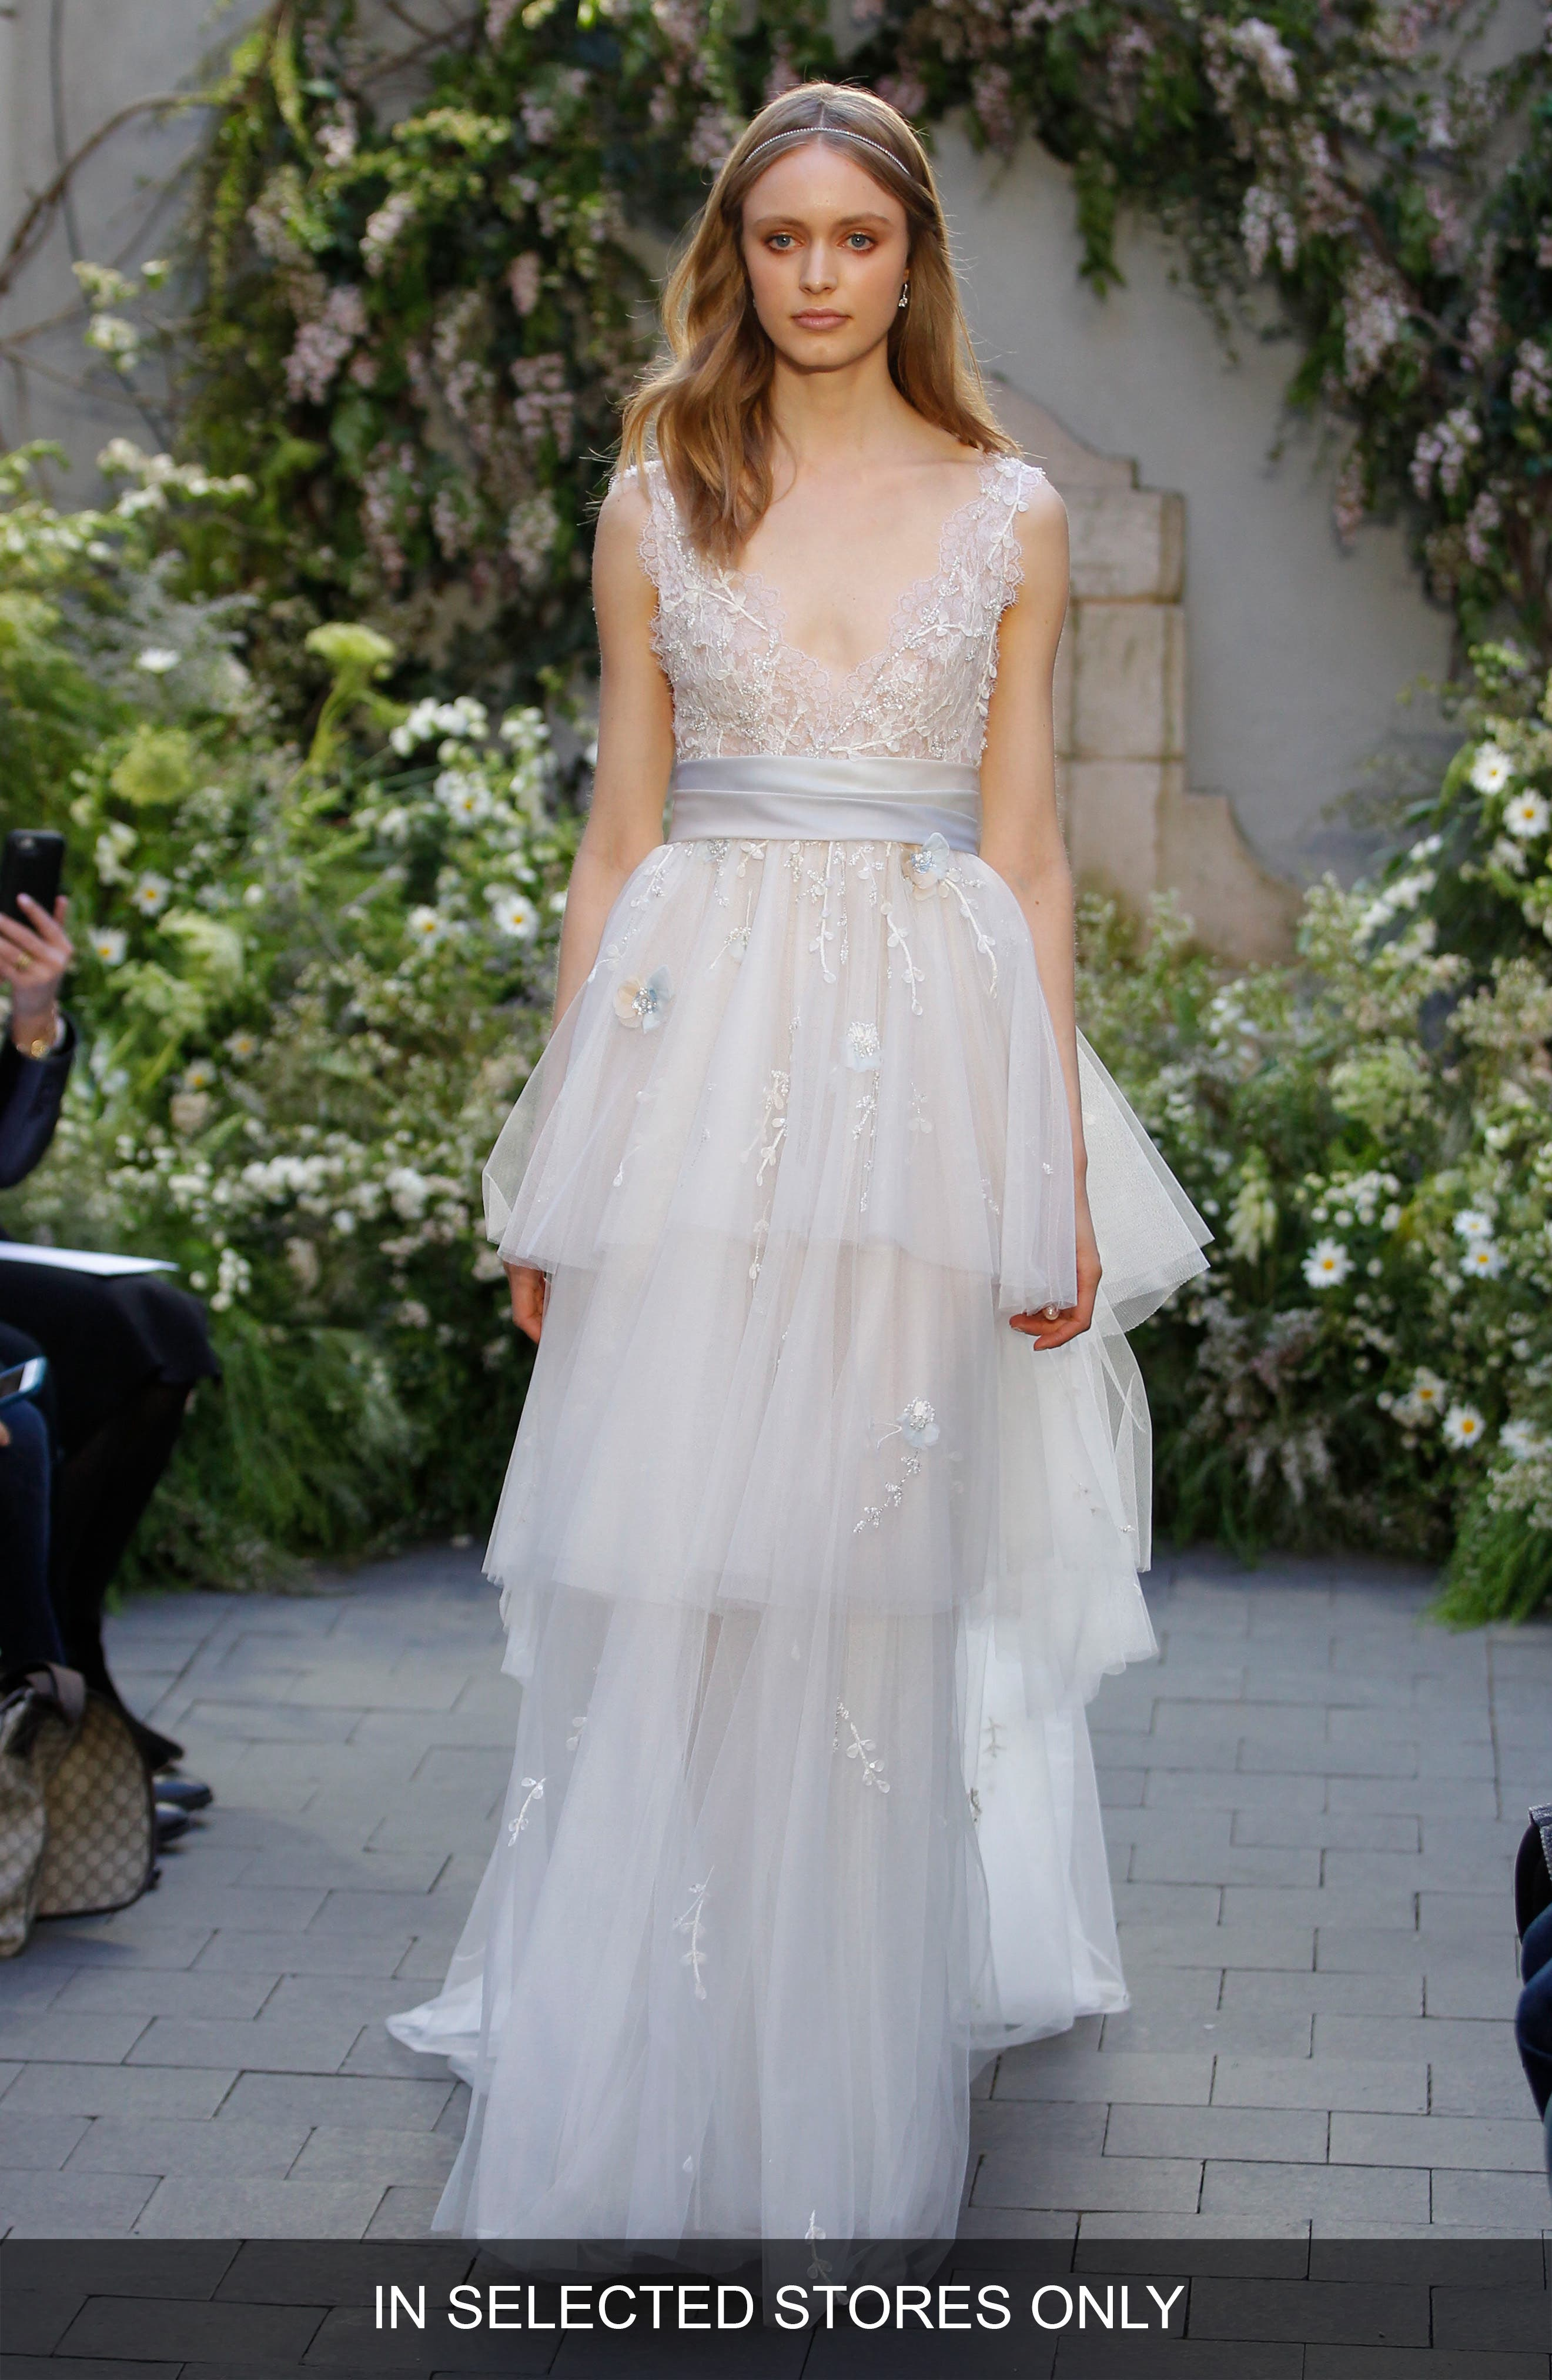 Alternate Image 1 Selected - Monique Lhuillier Coralie Lace & Tiered Tulle Gown